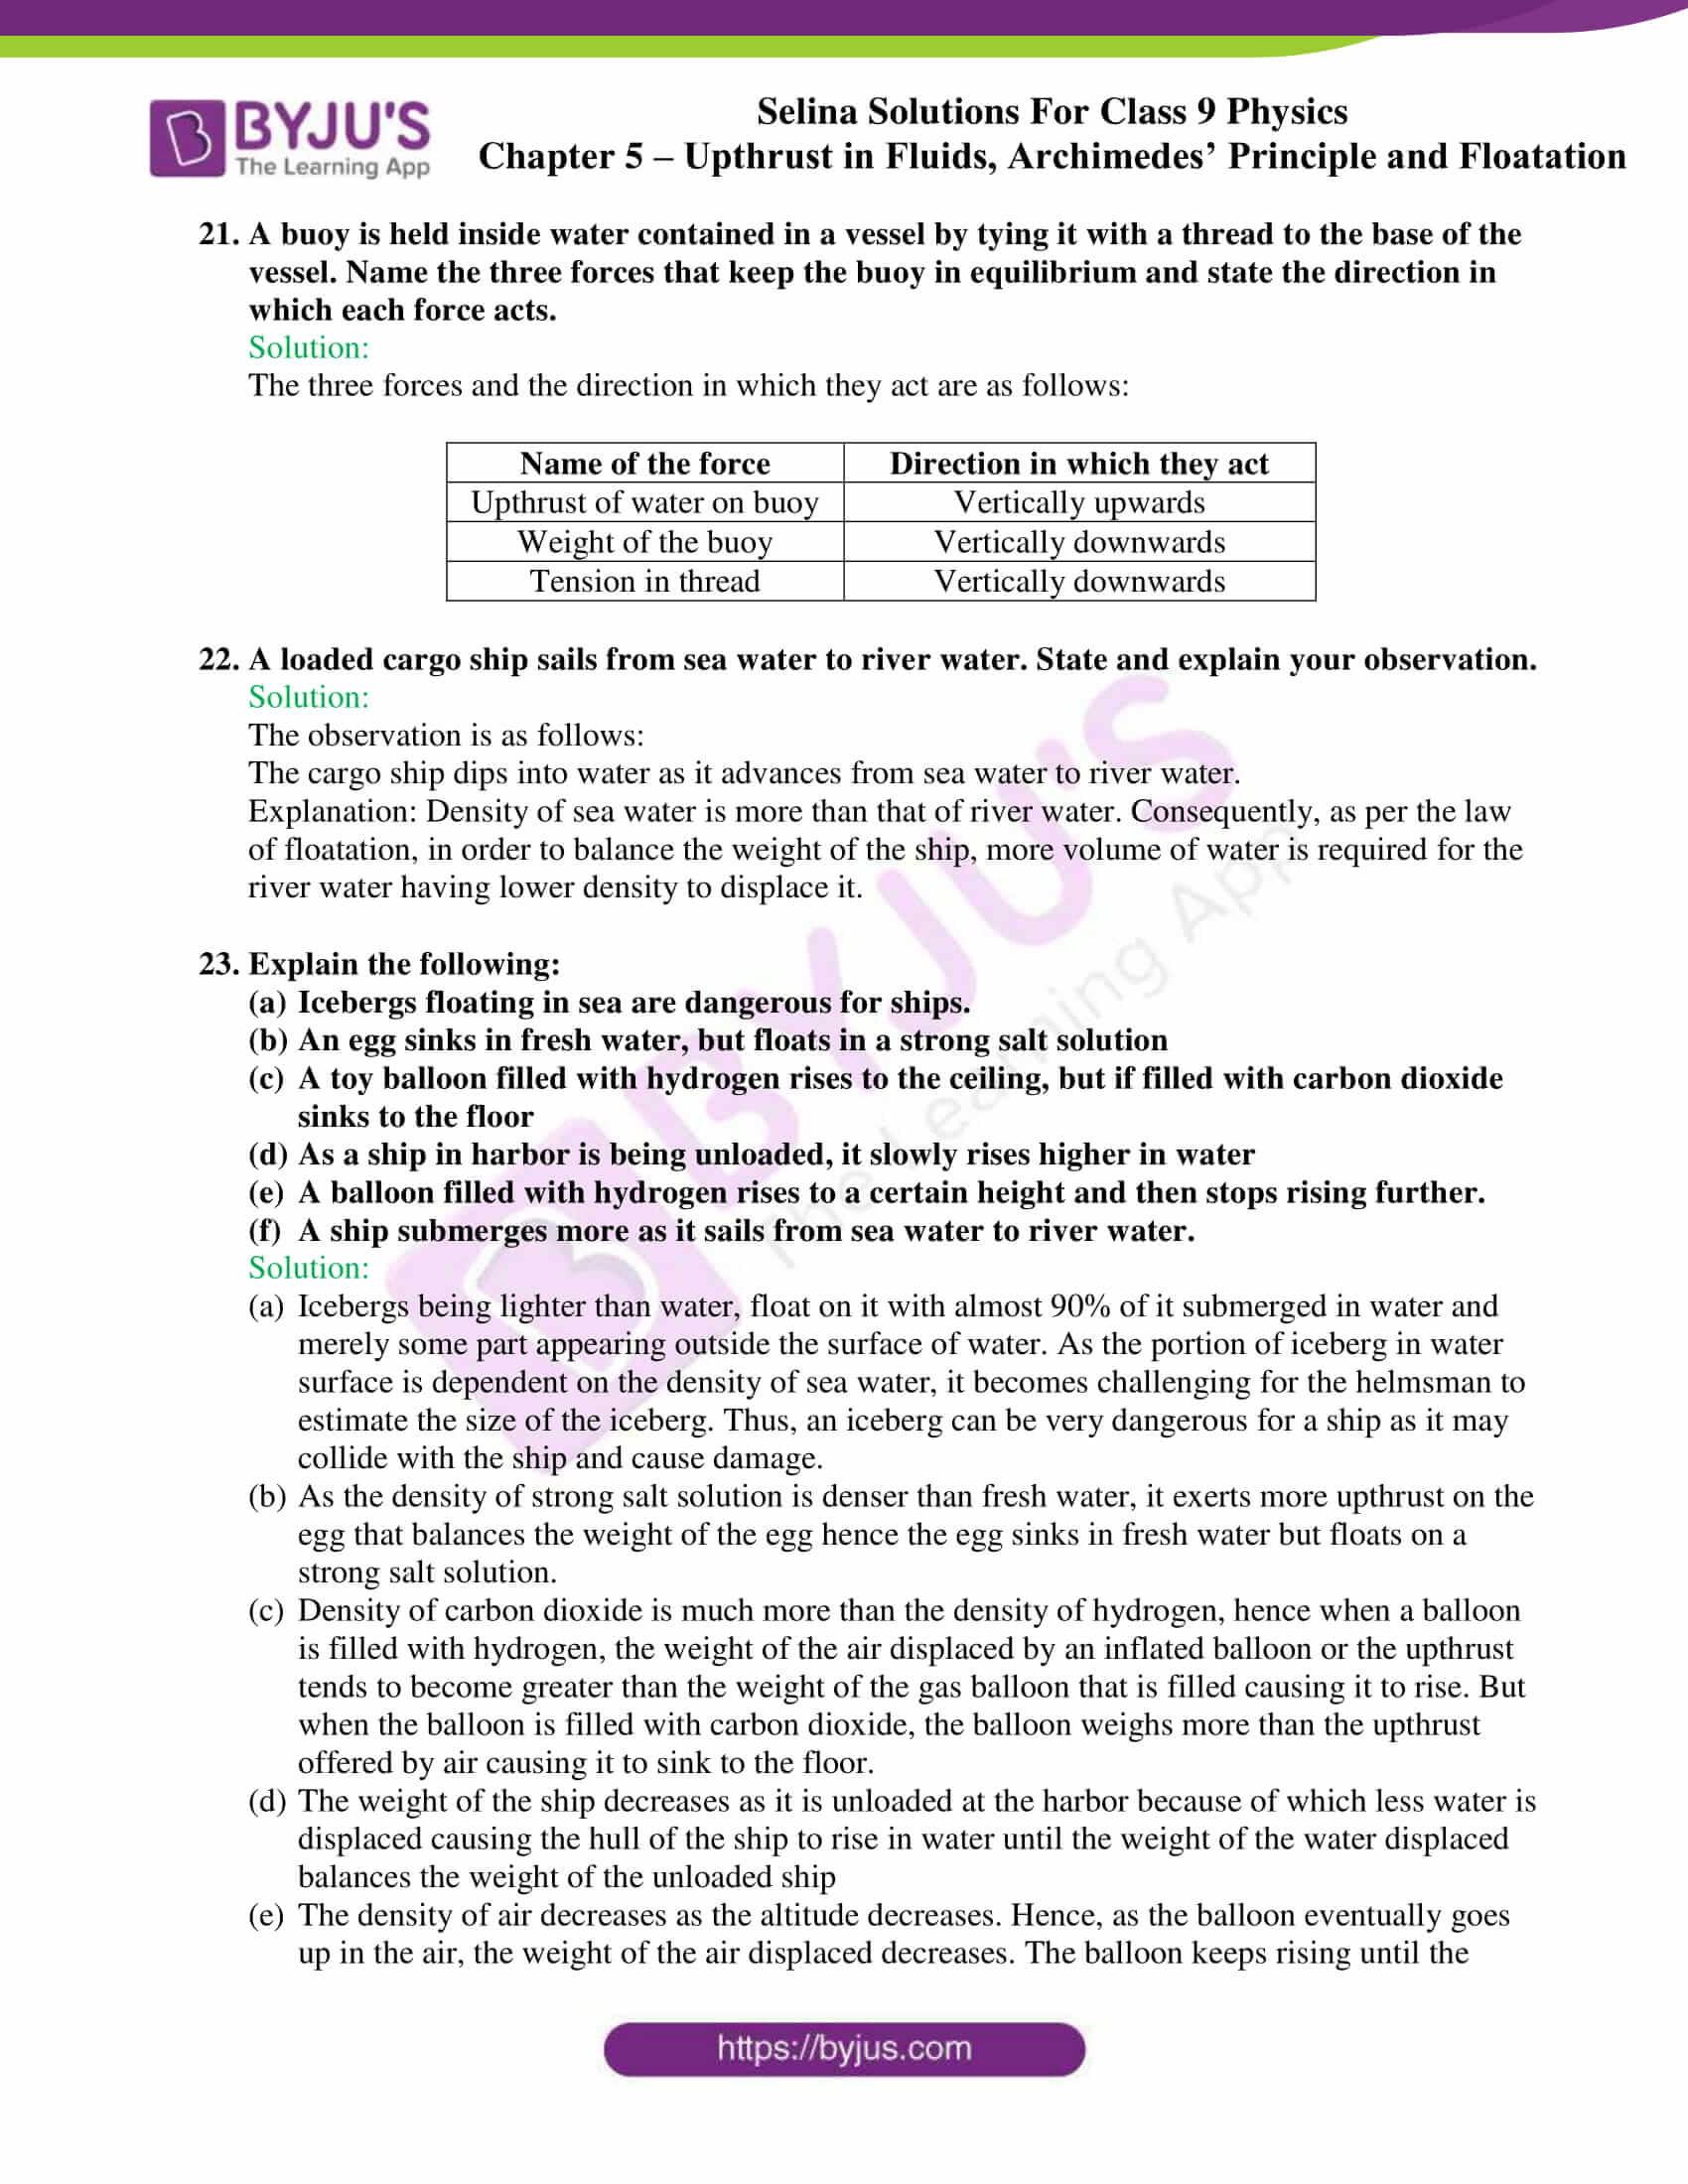 selina solutions class 9 physics chapter 5 part 28